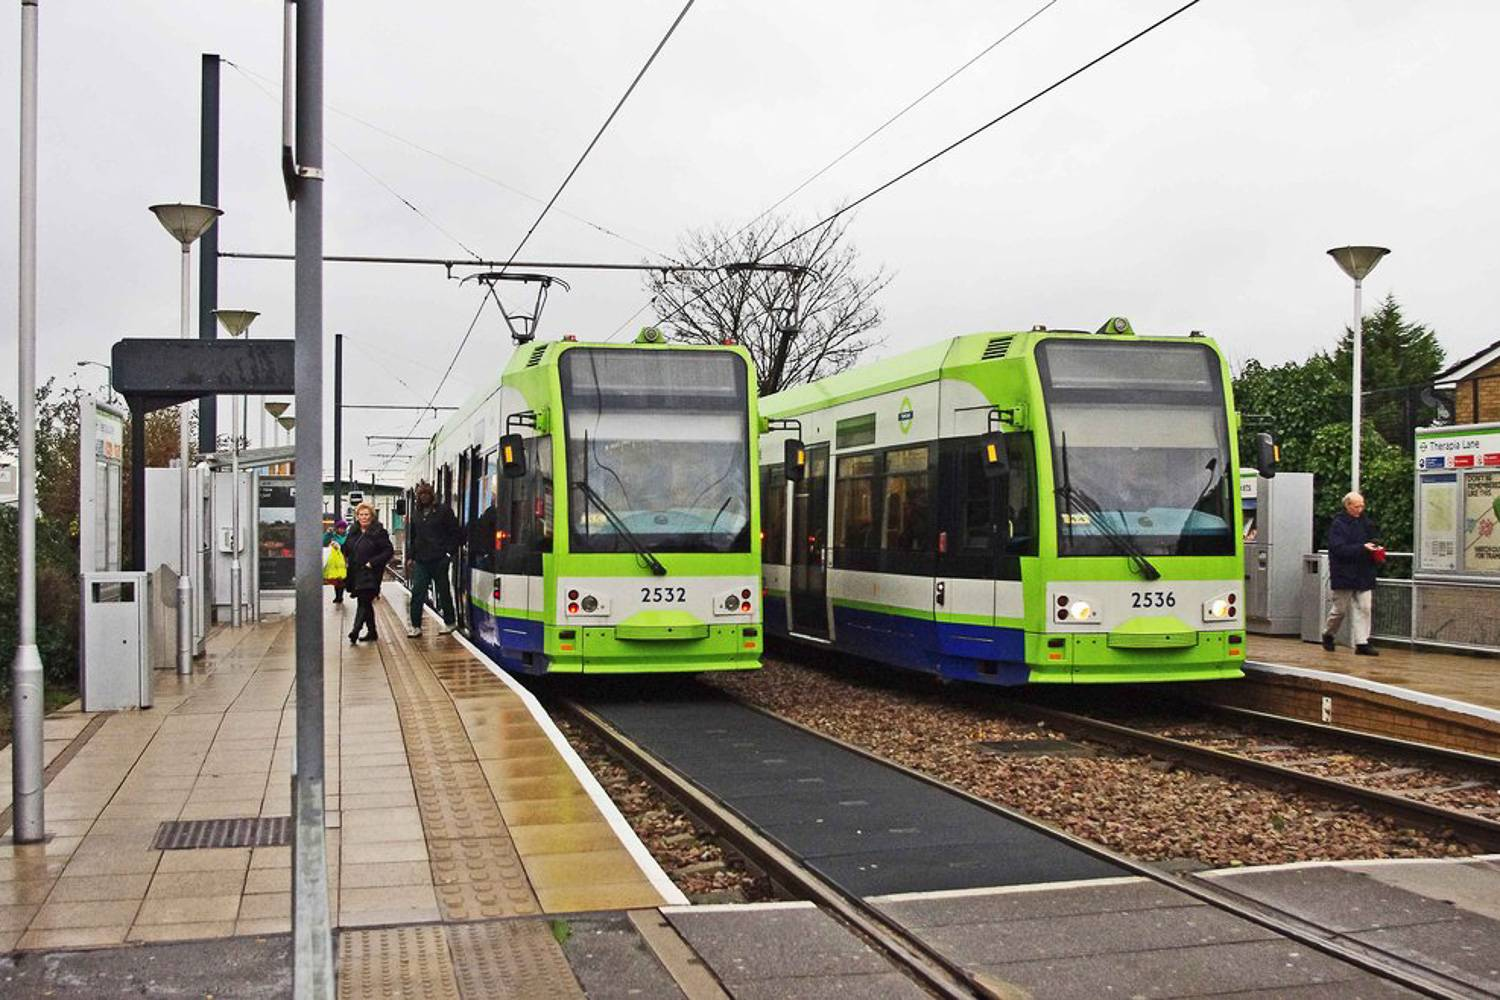 Image of two green London trams at a station.